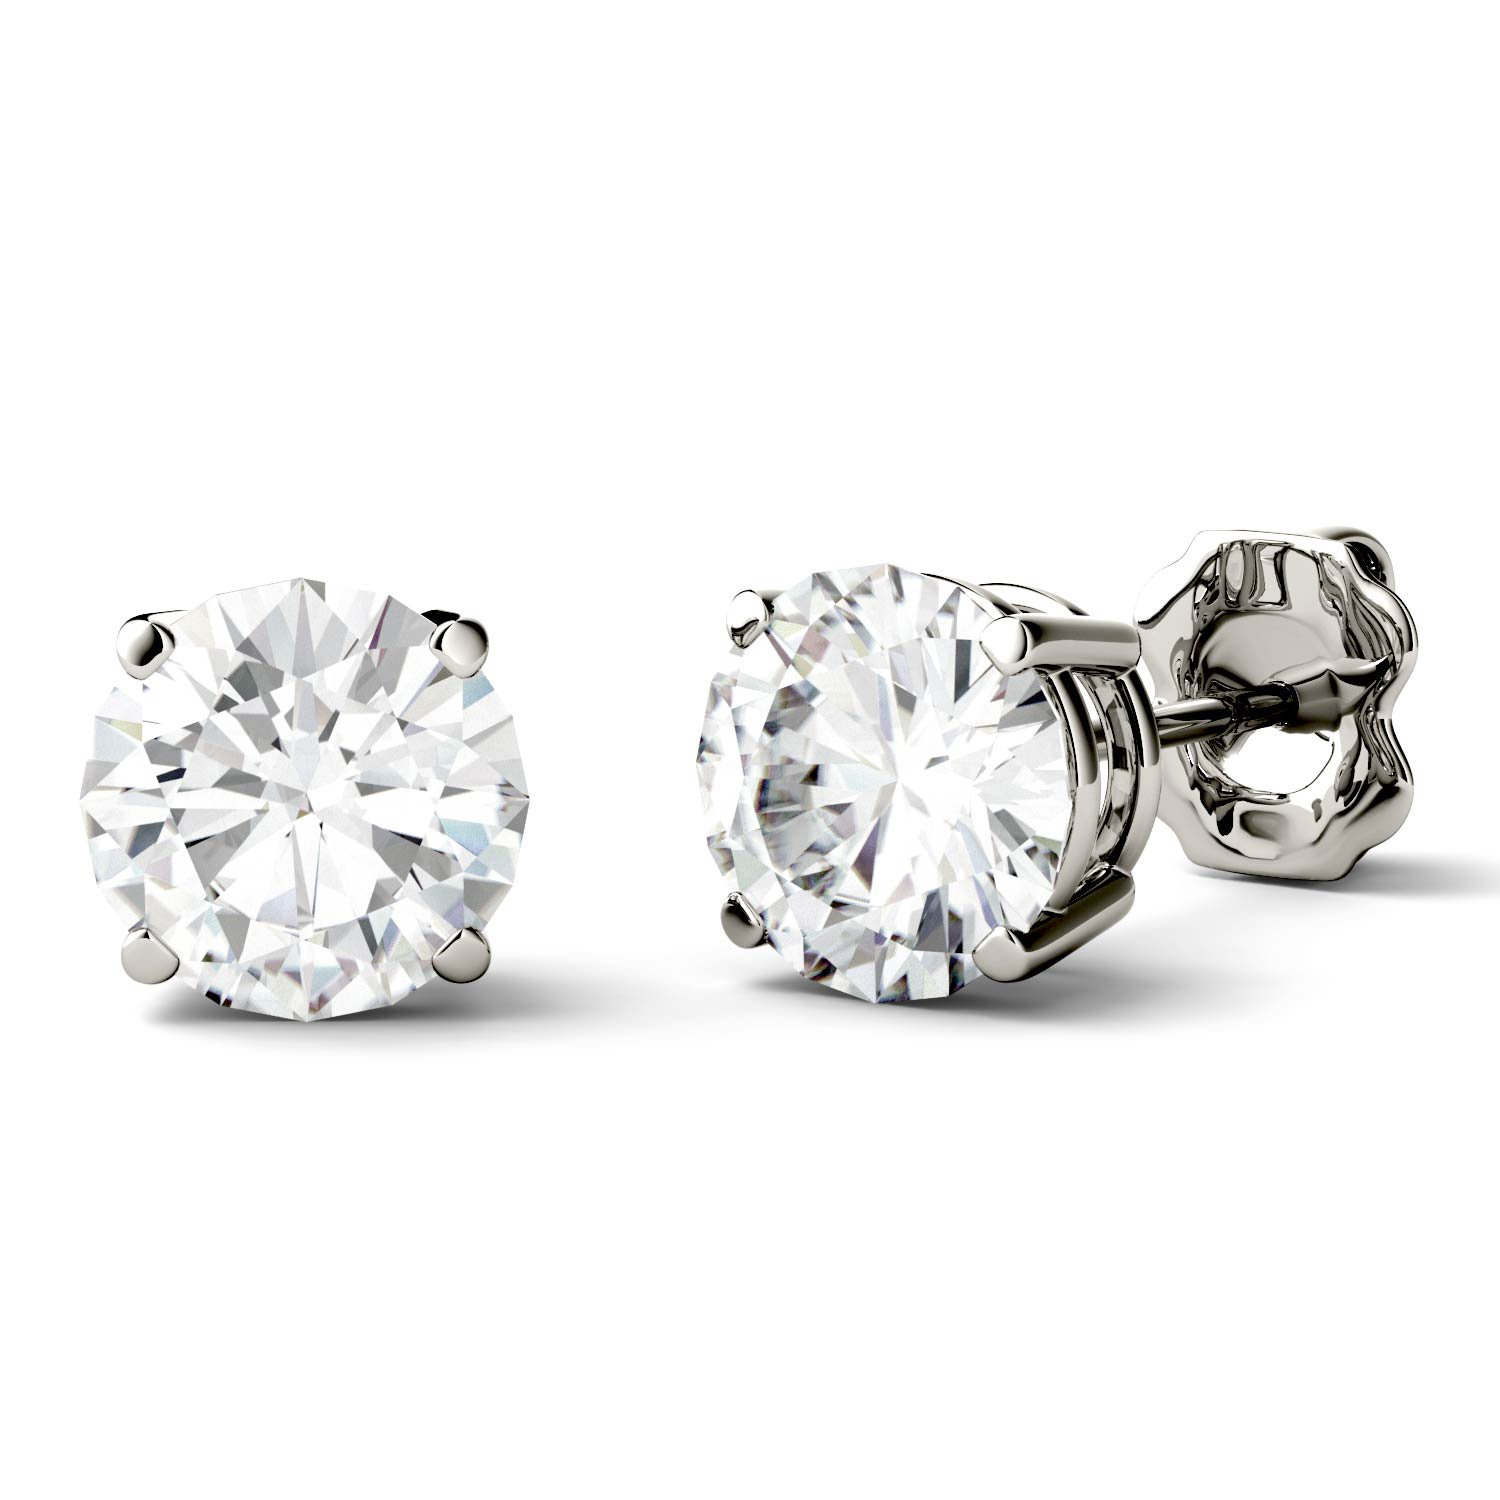 Forever One 6.5mm Round Moissanite Stud Earrings, 2.00cttw DEW By Charles & Colvard by Charles & Colvard (Image #2)